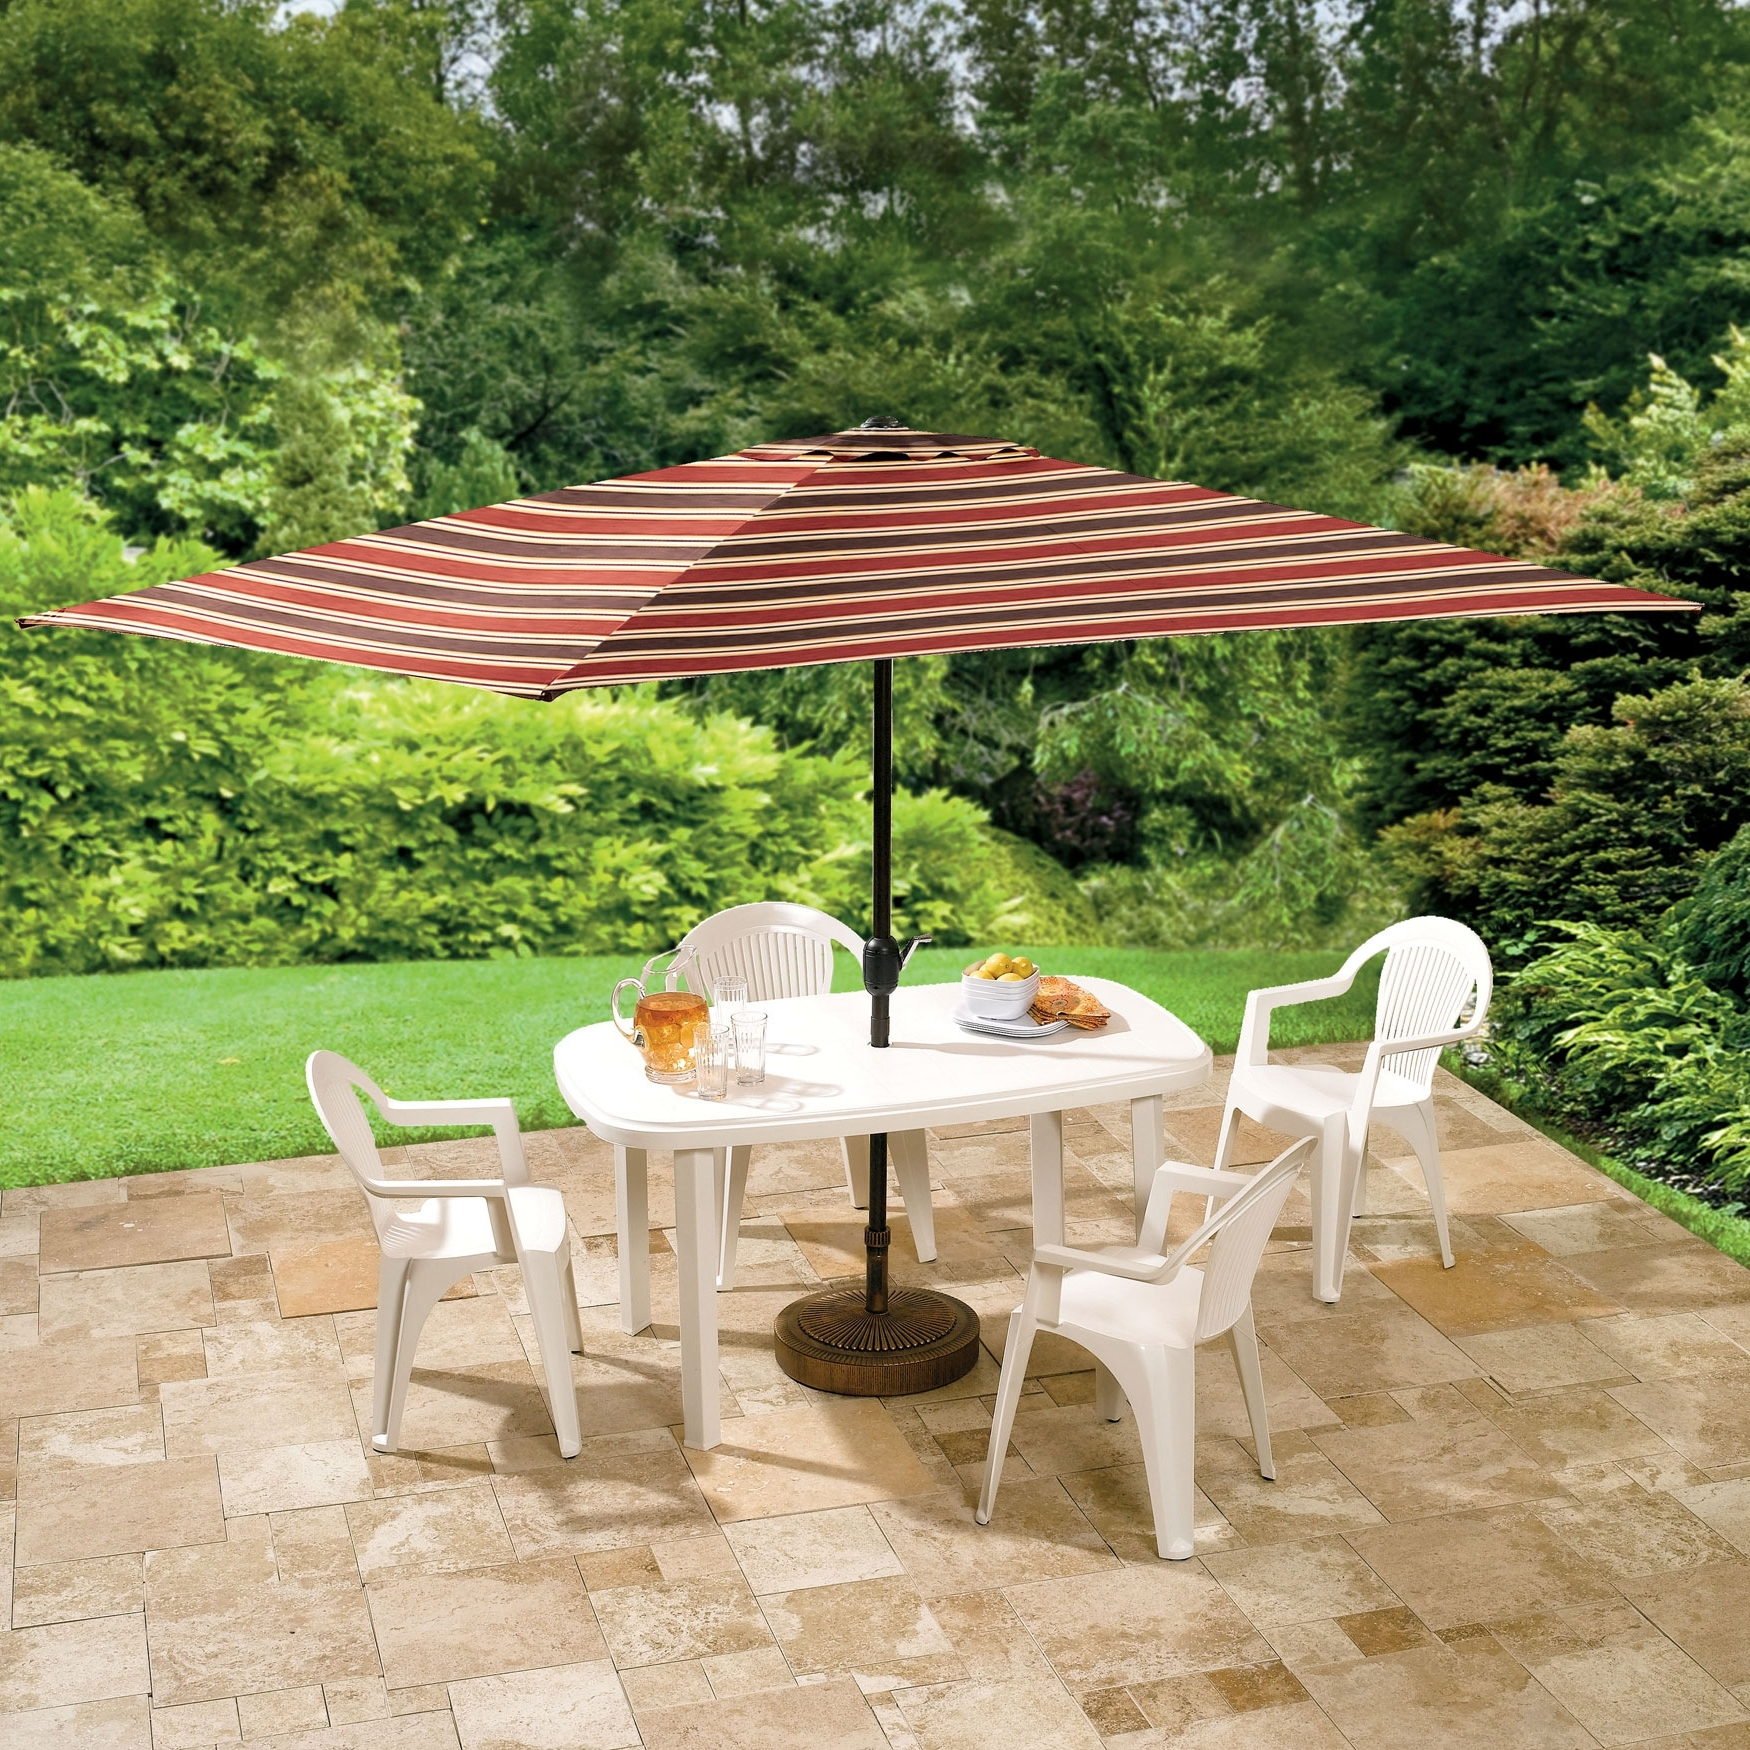 Offset Rectangular Patio Umbrella : Rectangular Patio Umbrella Regarding Most Recent Offset Rectangular Patio Umbrellas (View 8 of 20)